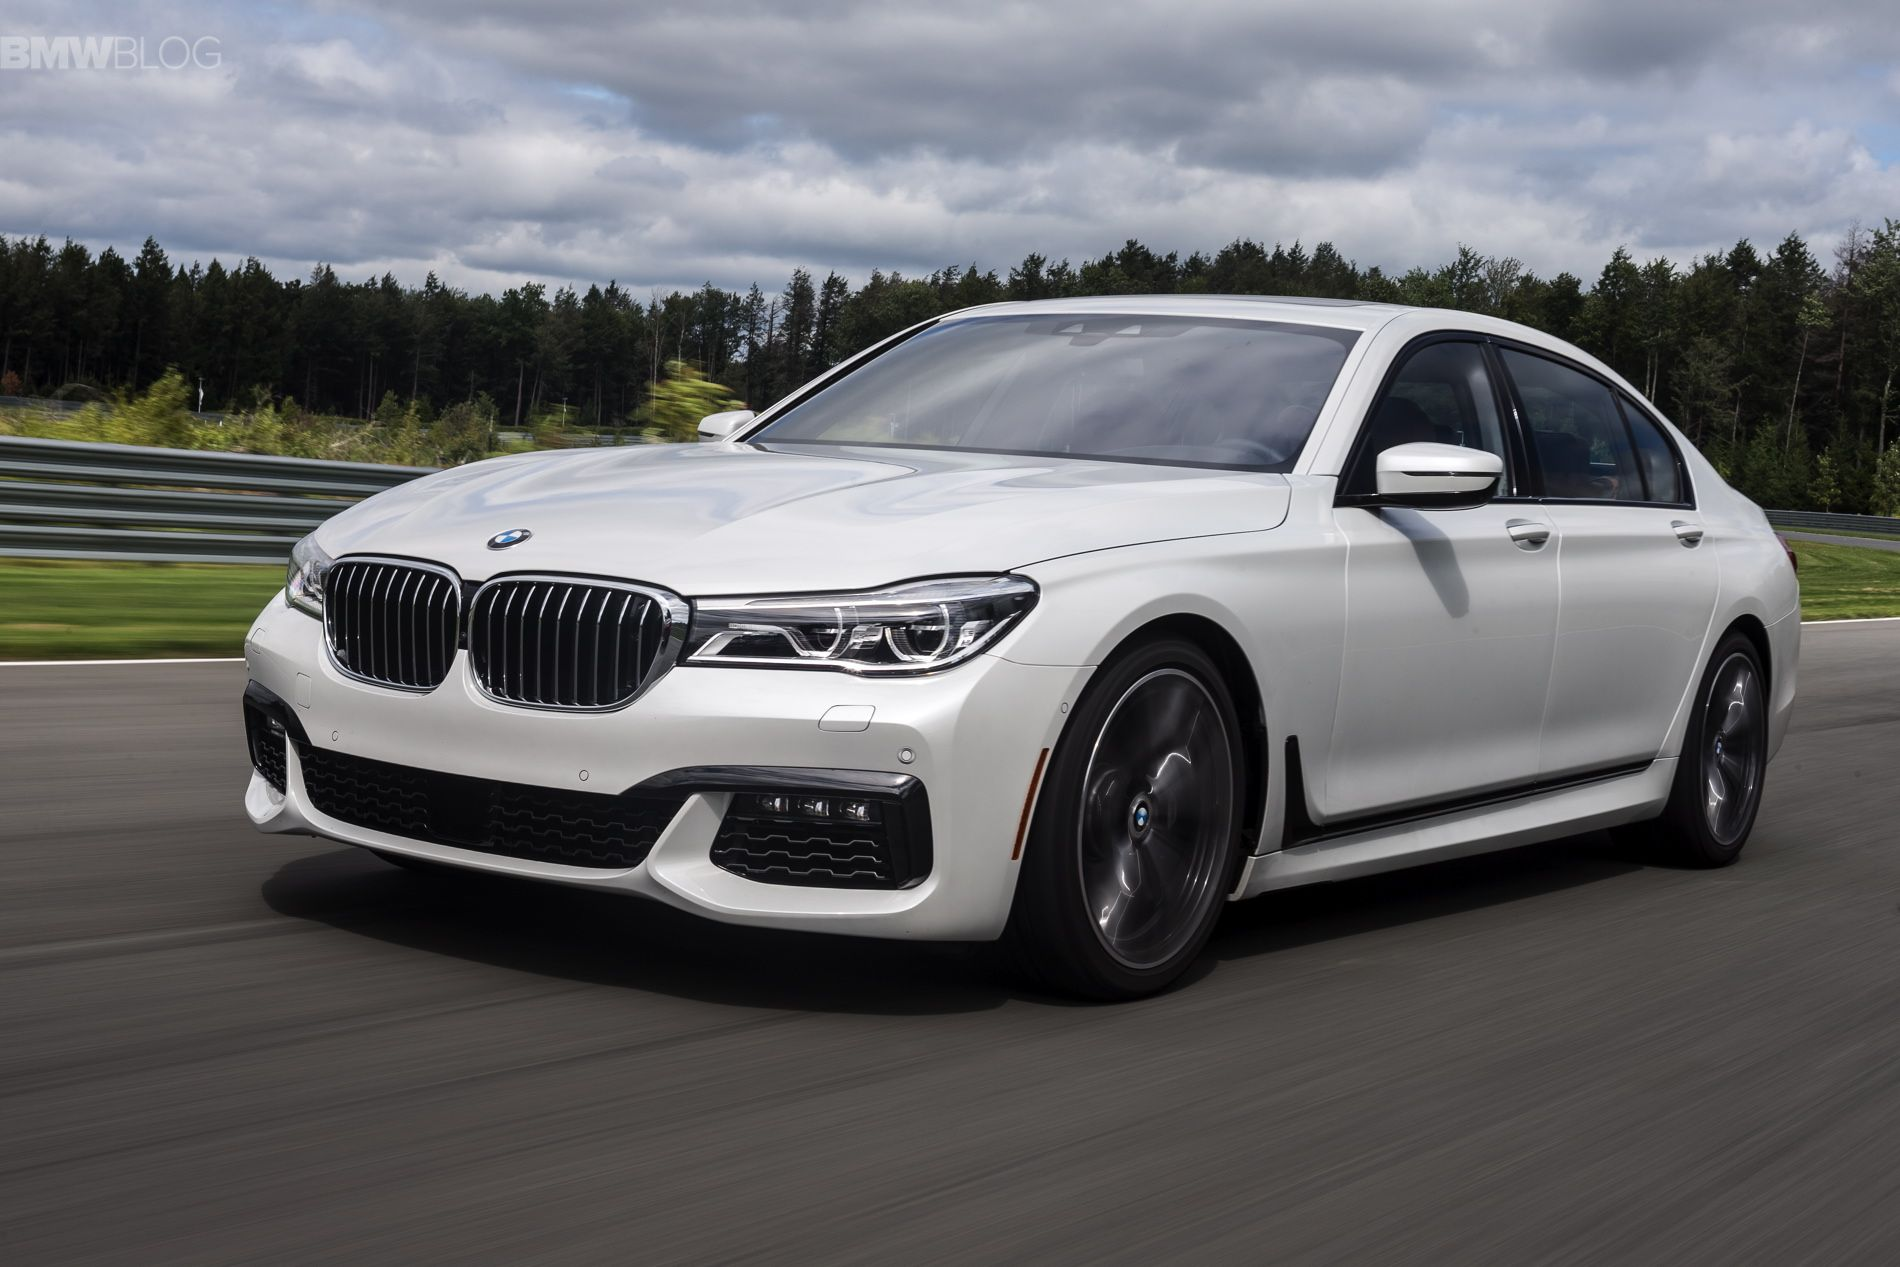 See The 2016 Bmw 750i Xdrive Accelerating To 155 Mph With Images